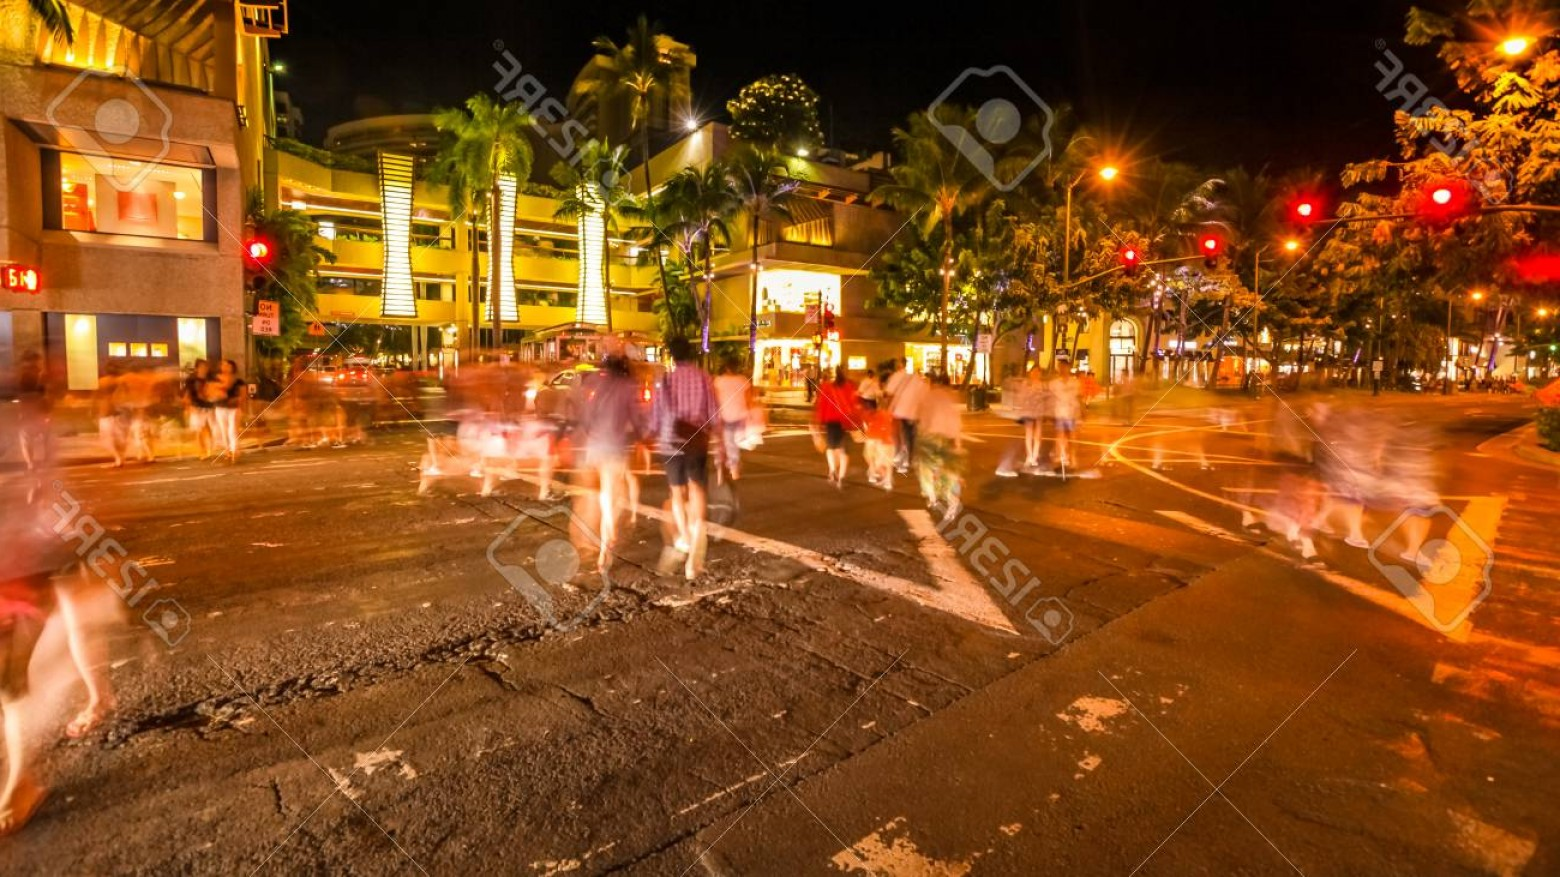 City Of Honolulu At Night Vector: Photopeople Moving To Wikiki Shopping Centre In Motion Blur With Cars Crossing The Streets City Night Lig